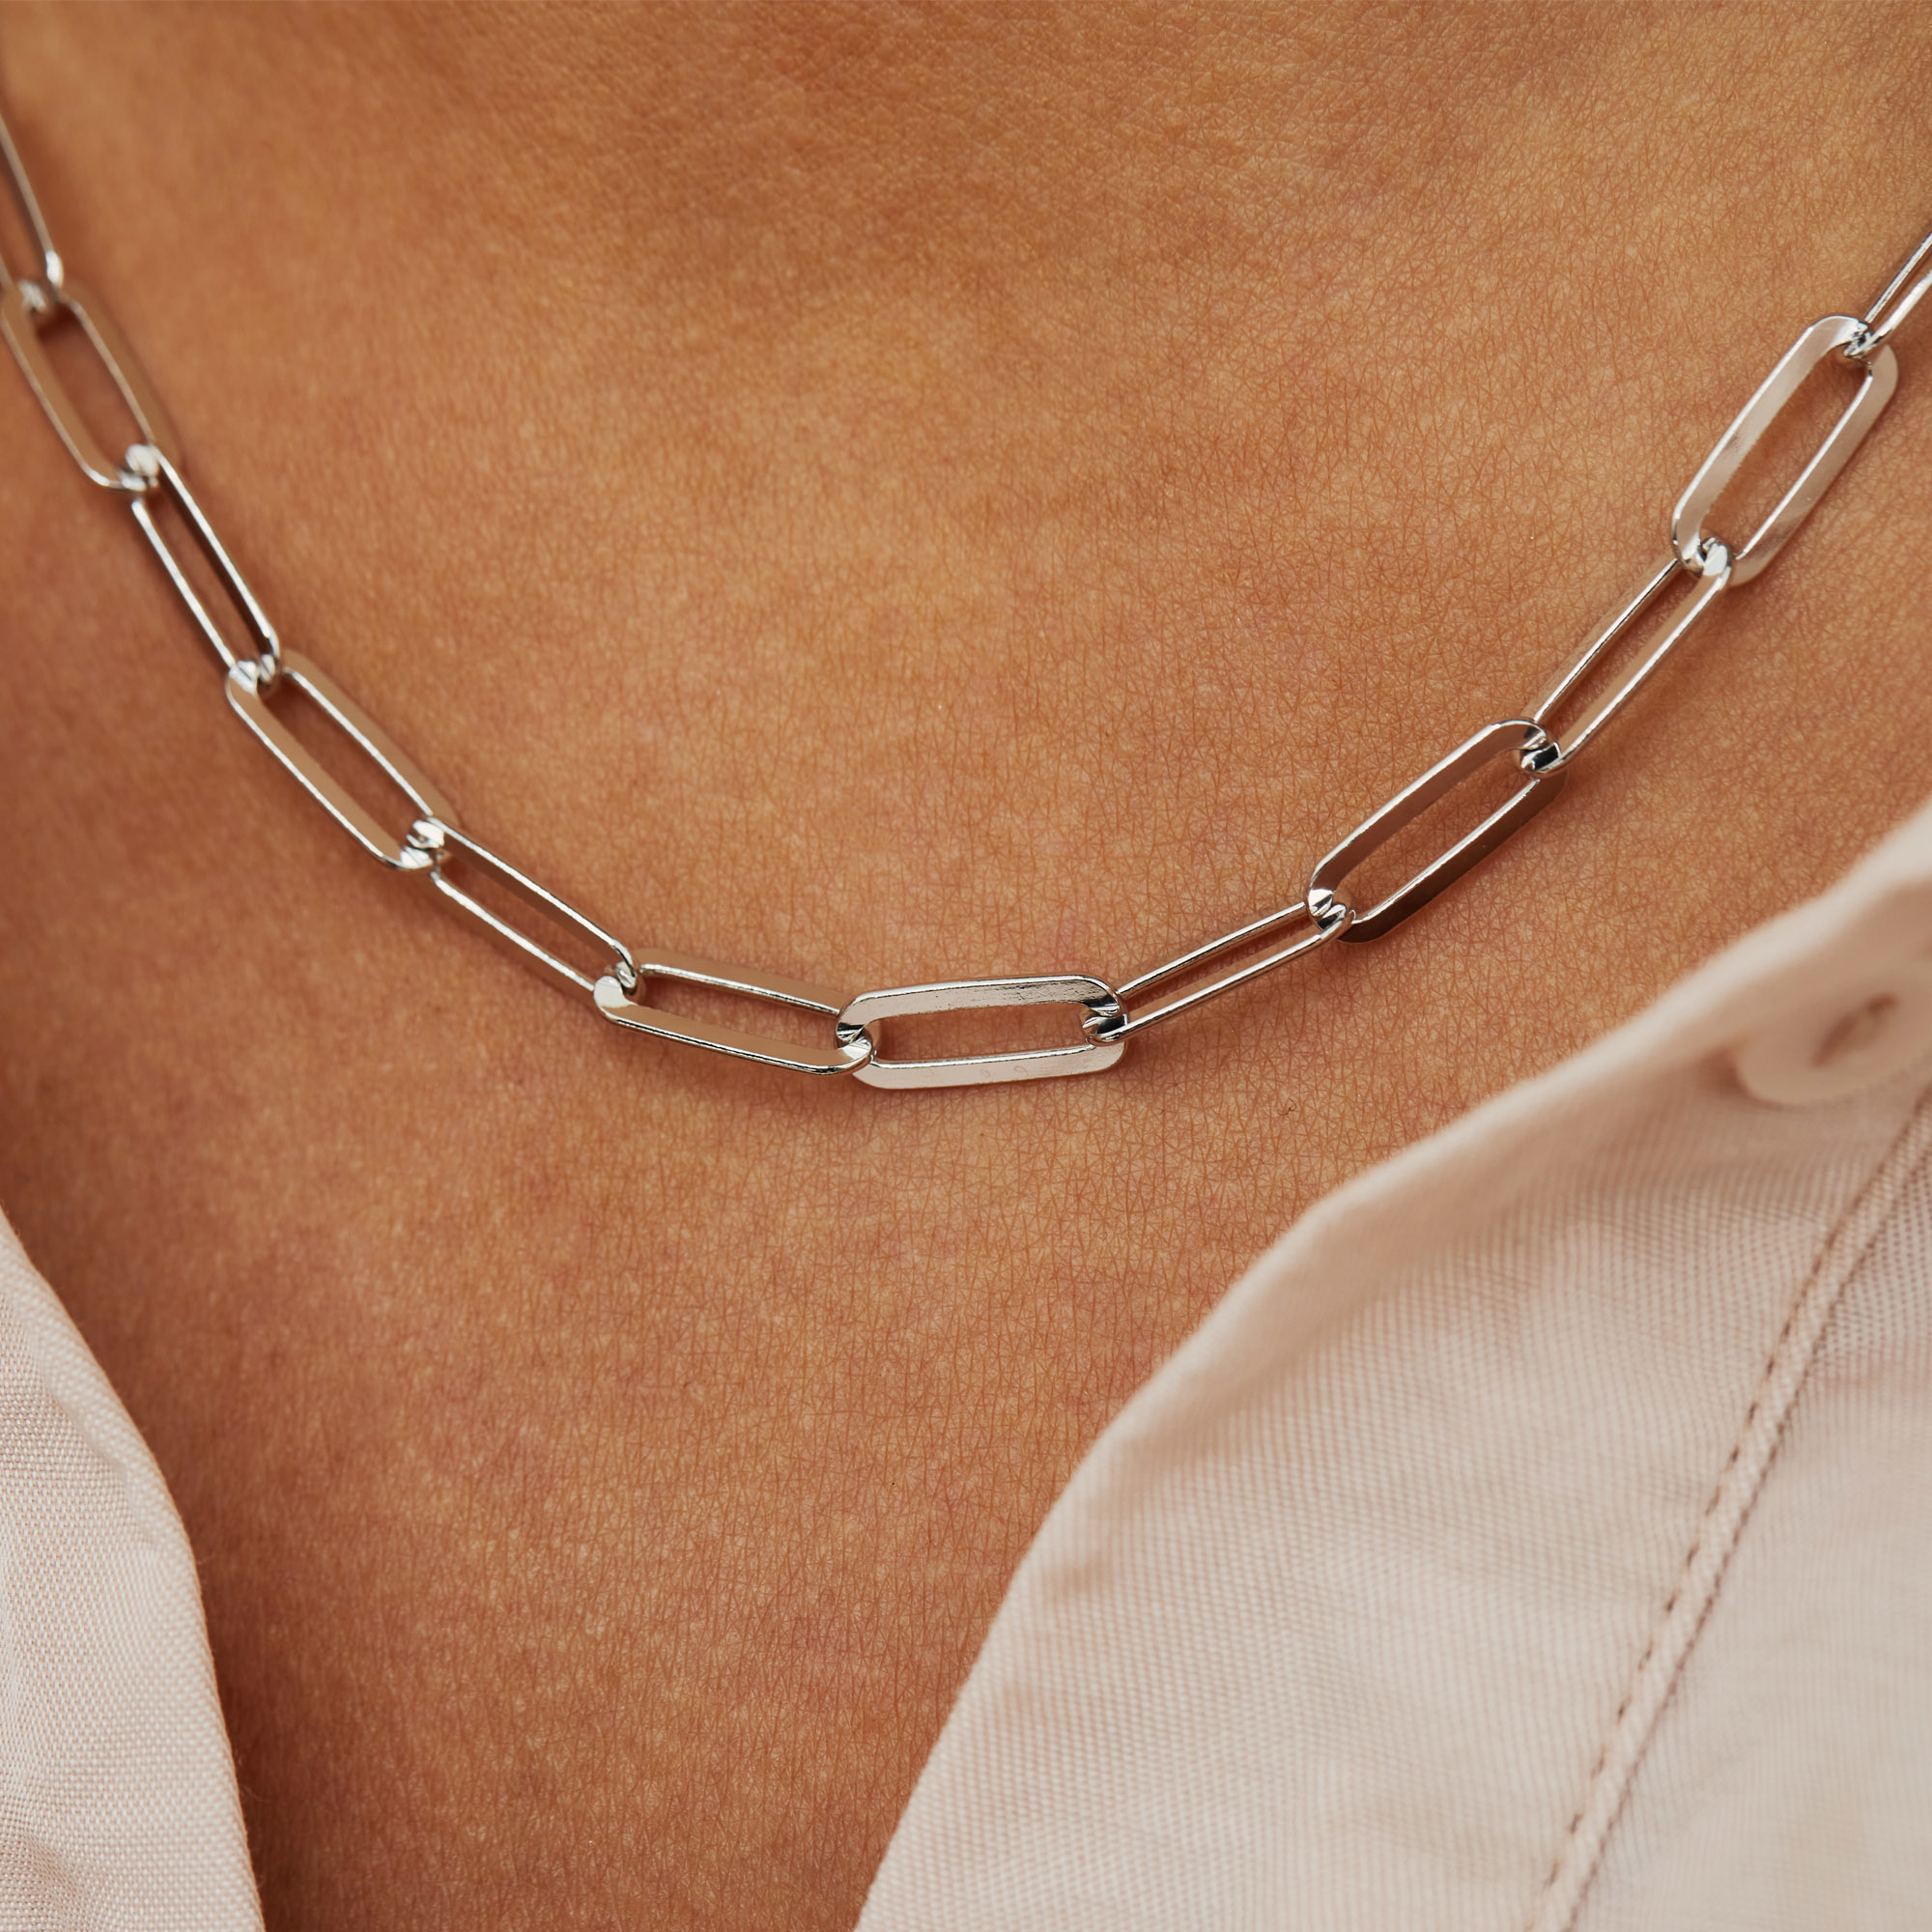 Selected Jewels Emma Jolie 925 sterling silver necklace